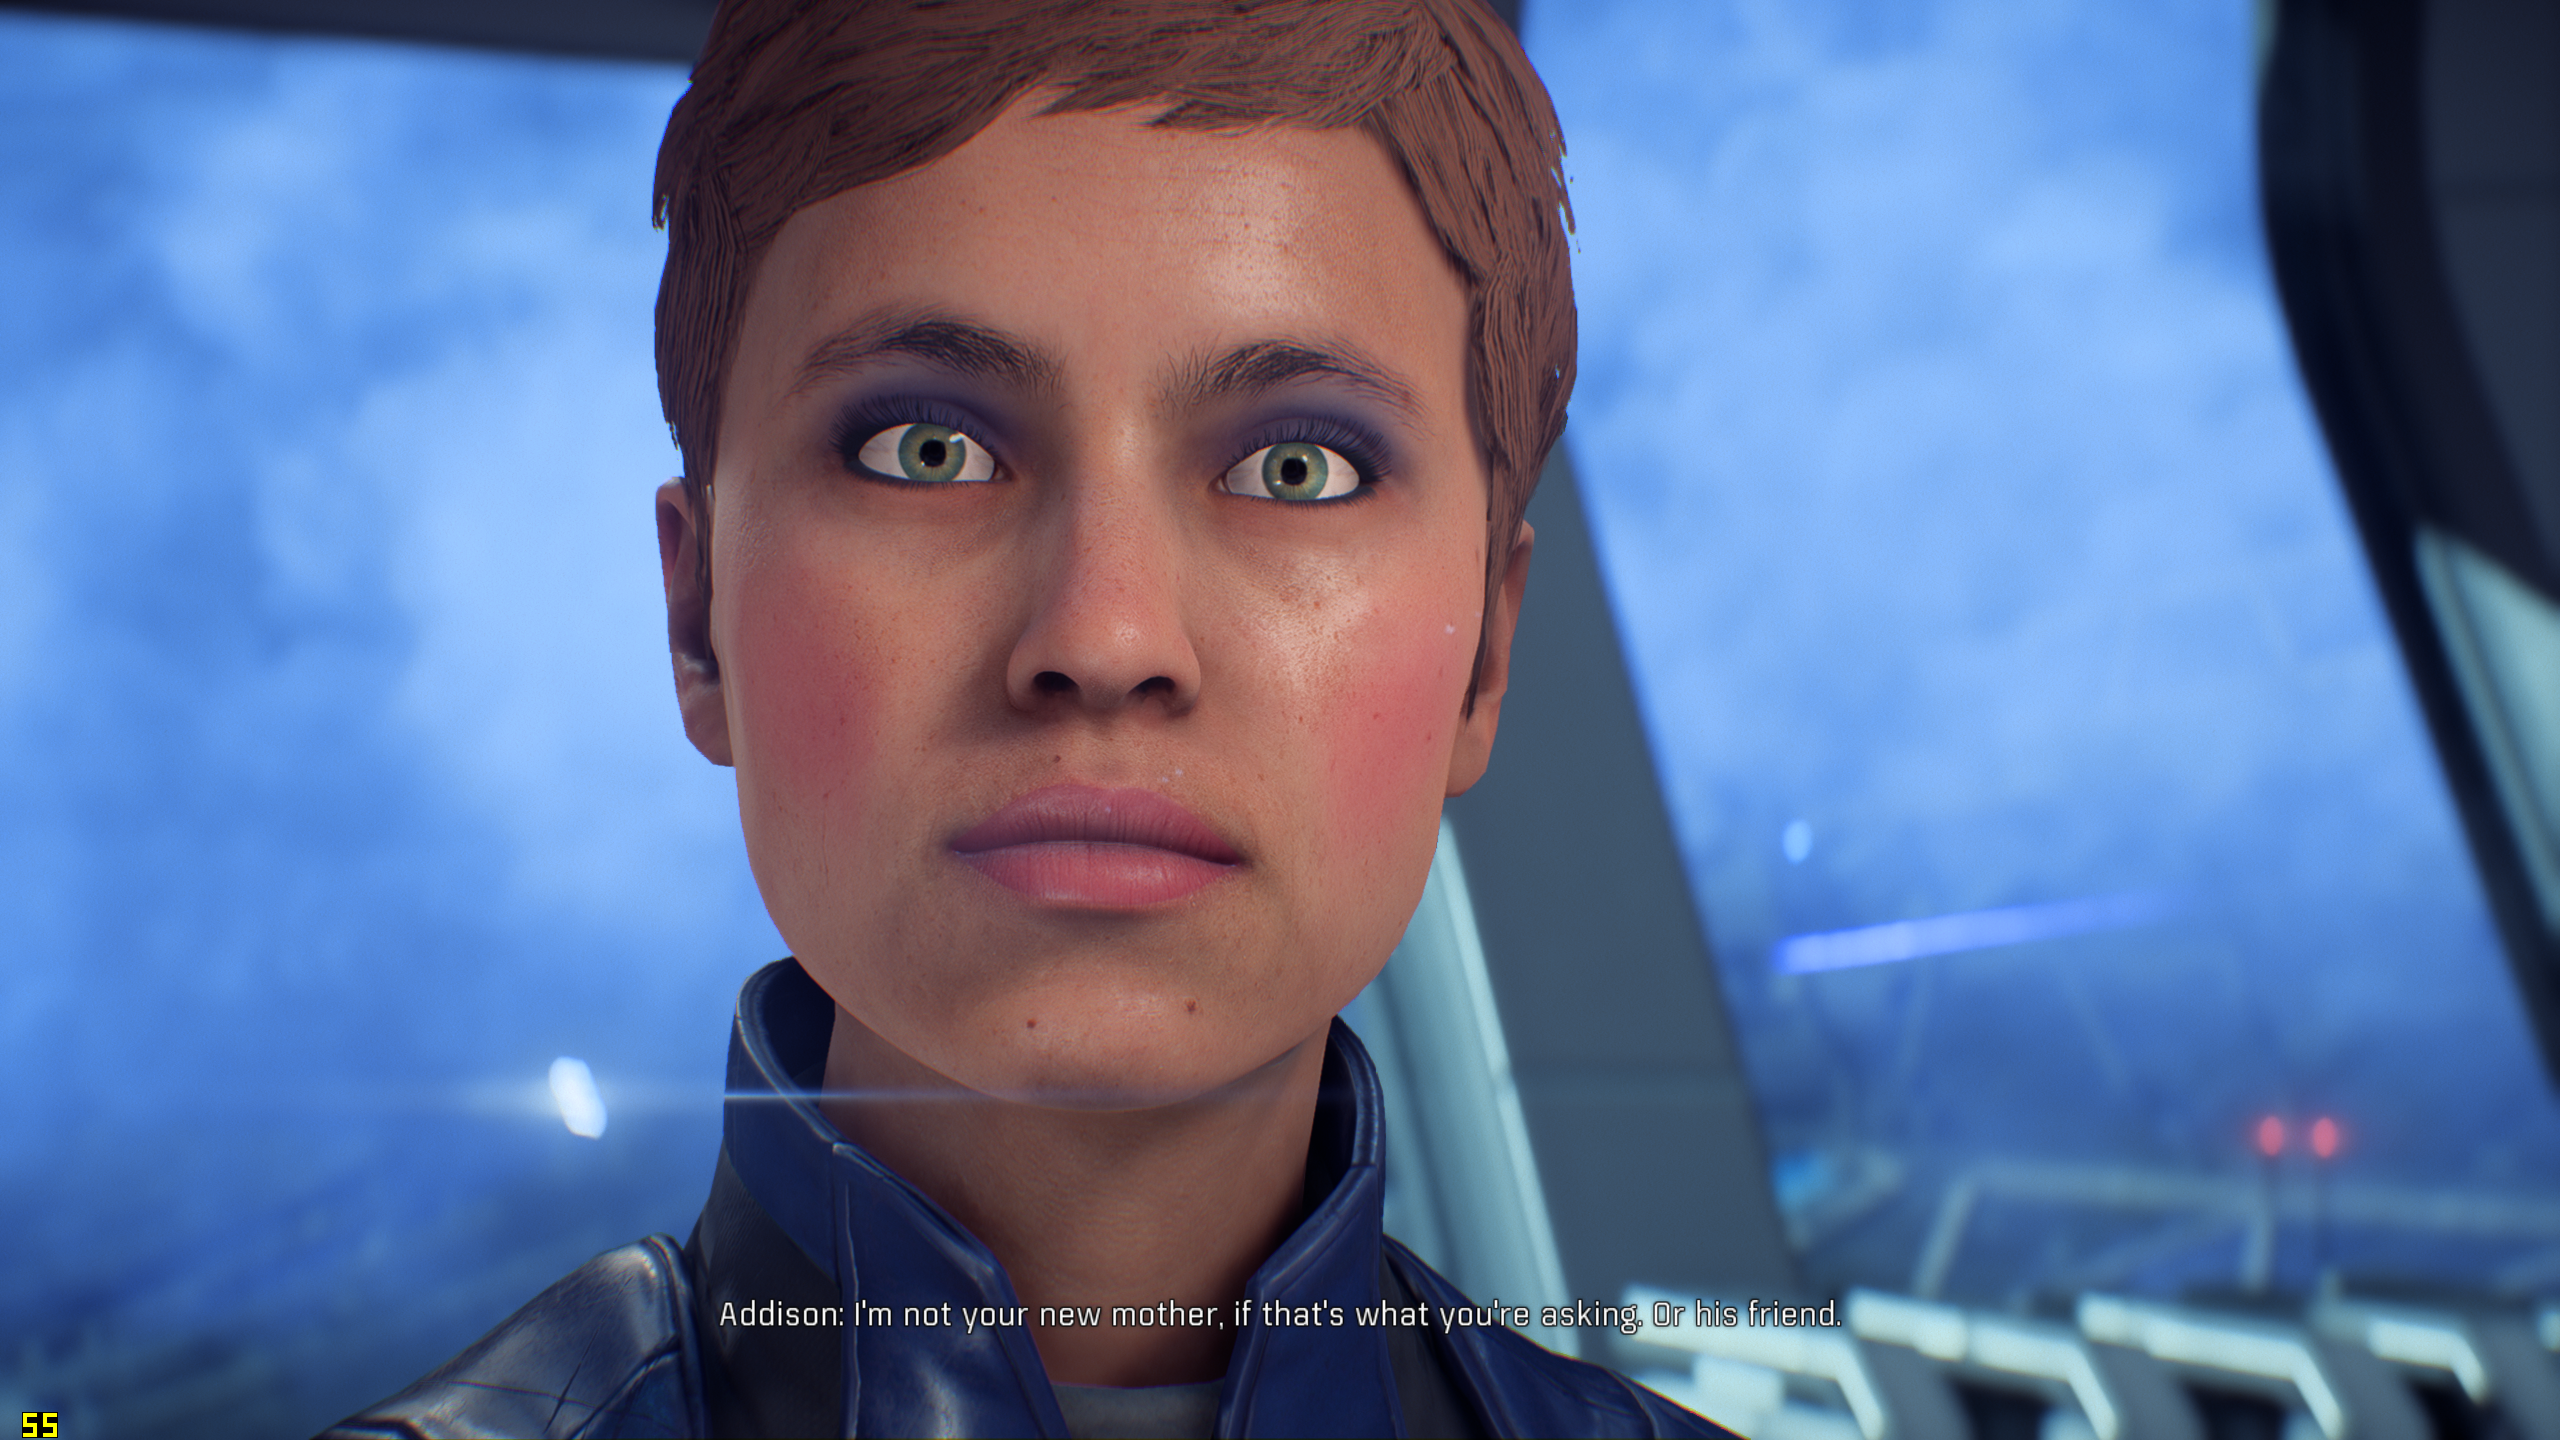 My First Impressions Of Mass Effect Andromeda